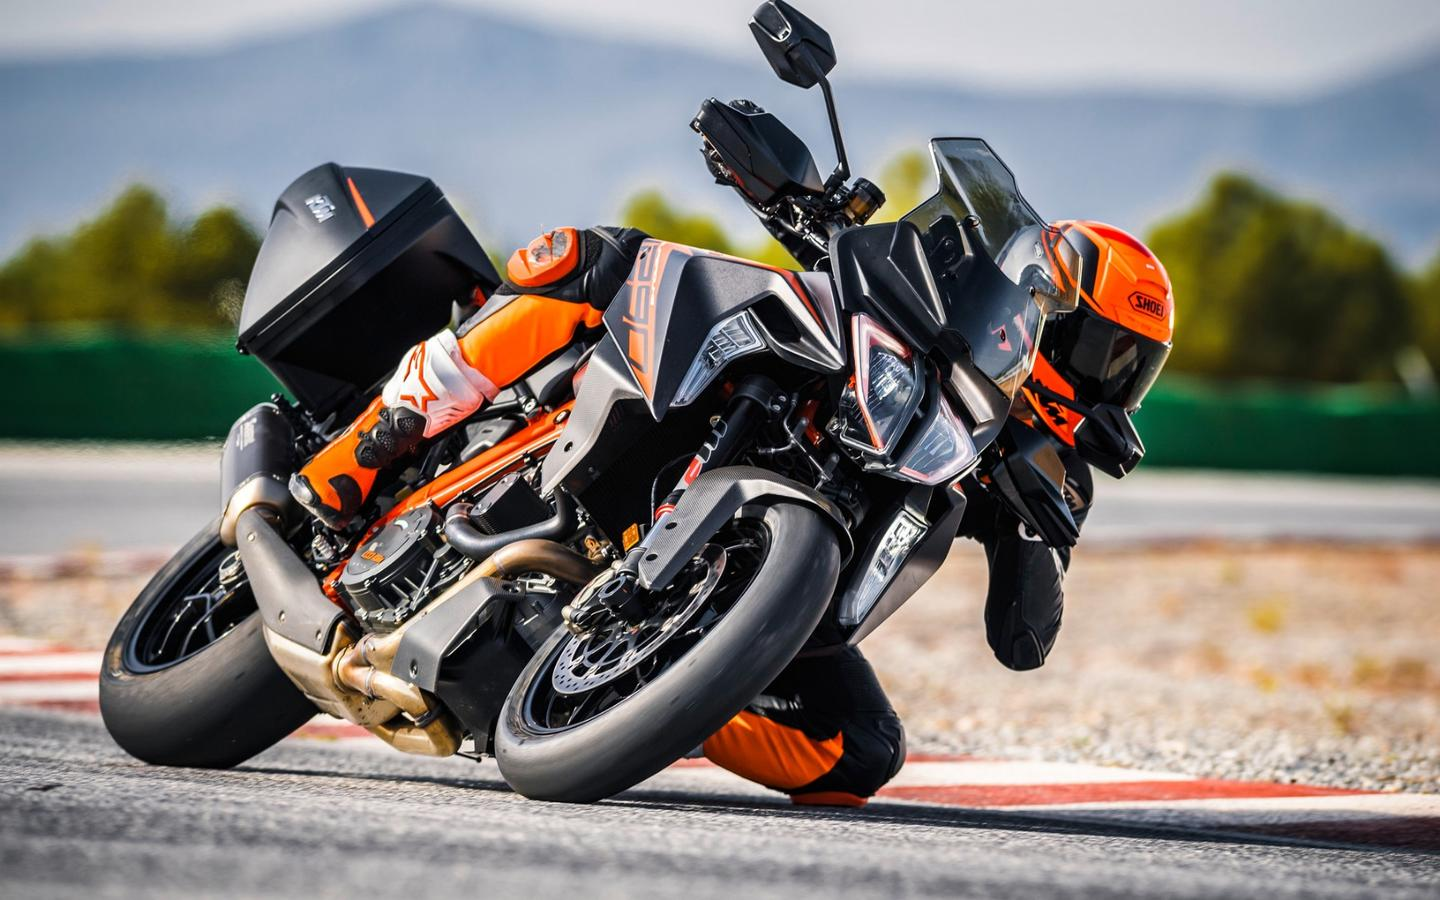 Showing off is mandatory on a Super Duke 1290 GT